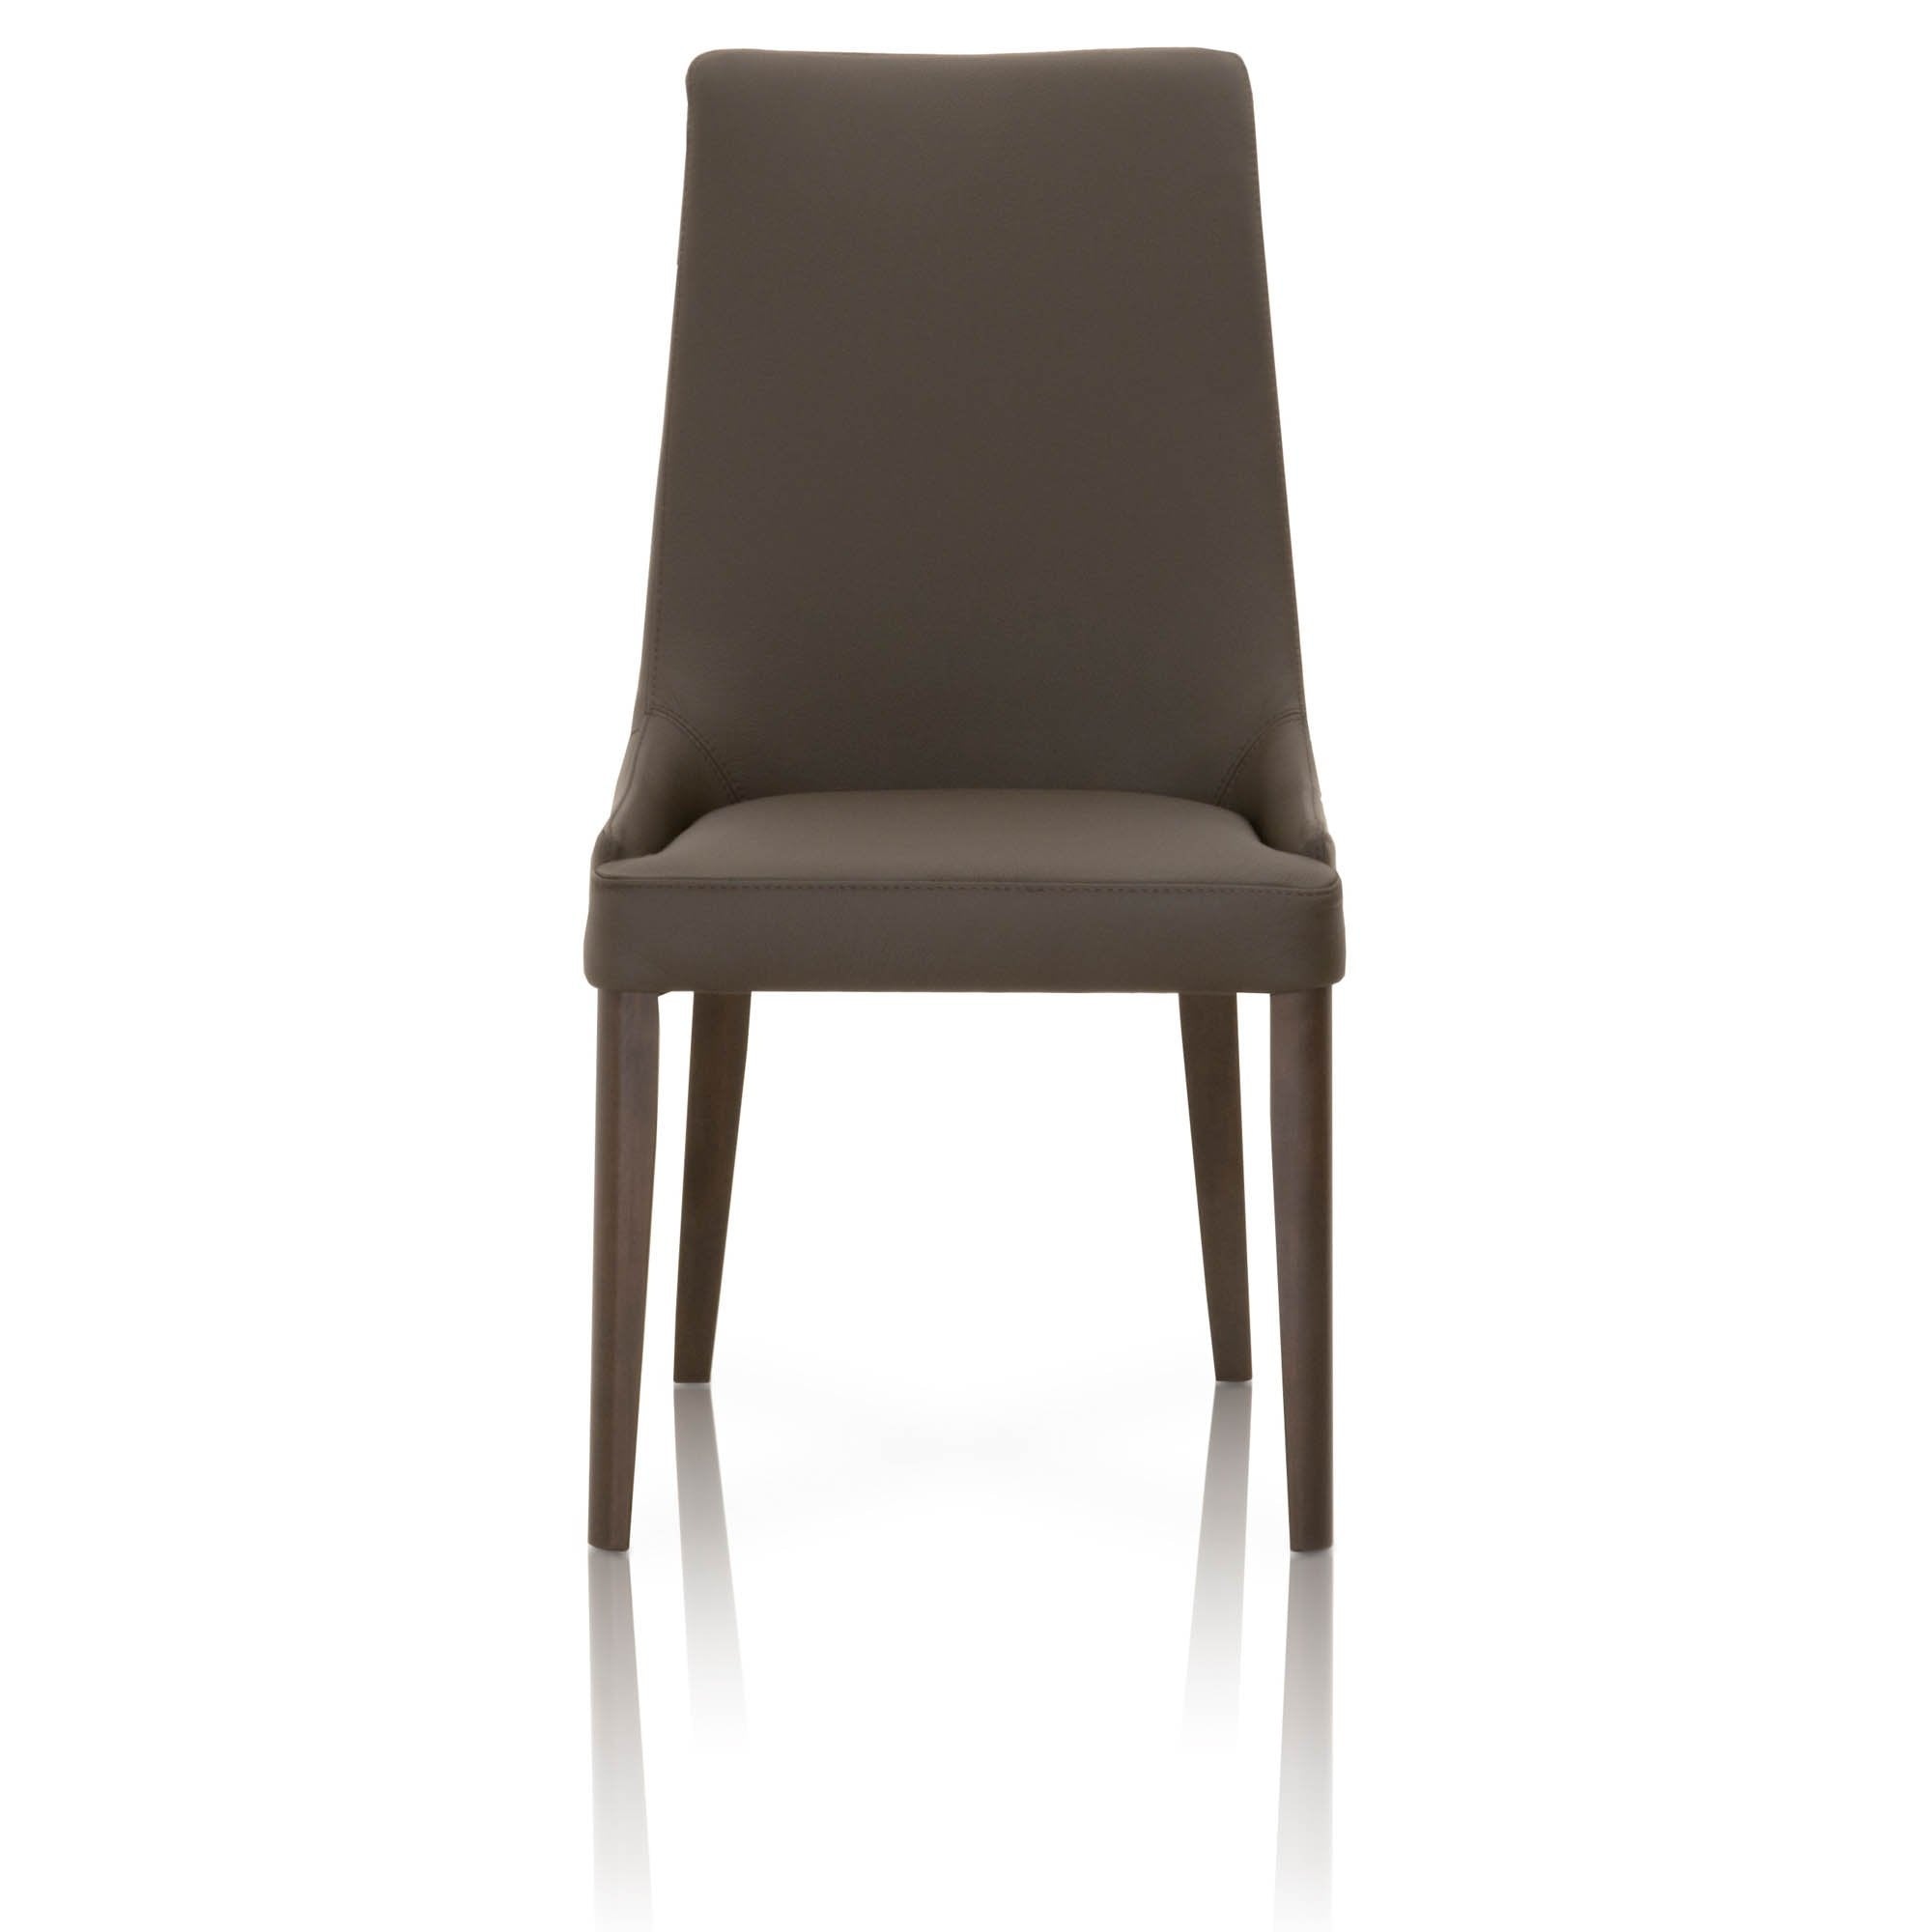 Aurora Dining Chair (Set of 2) in Dark Wenge